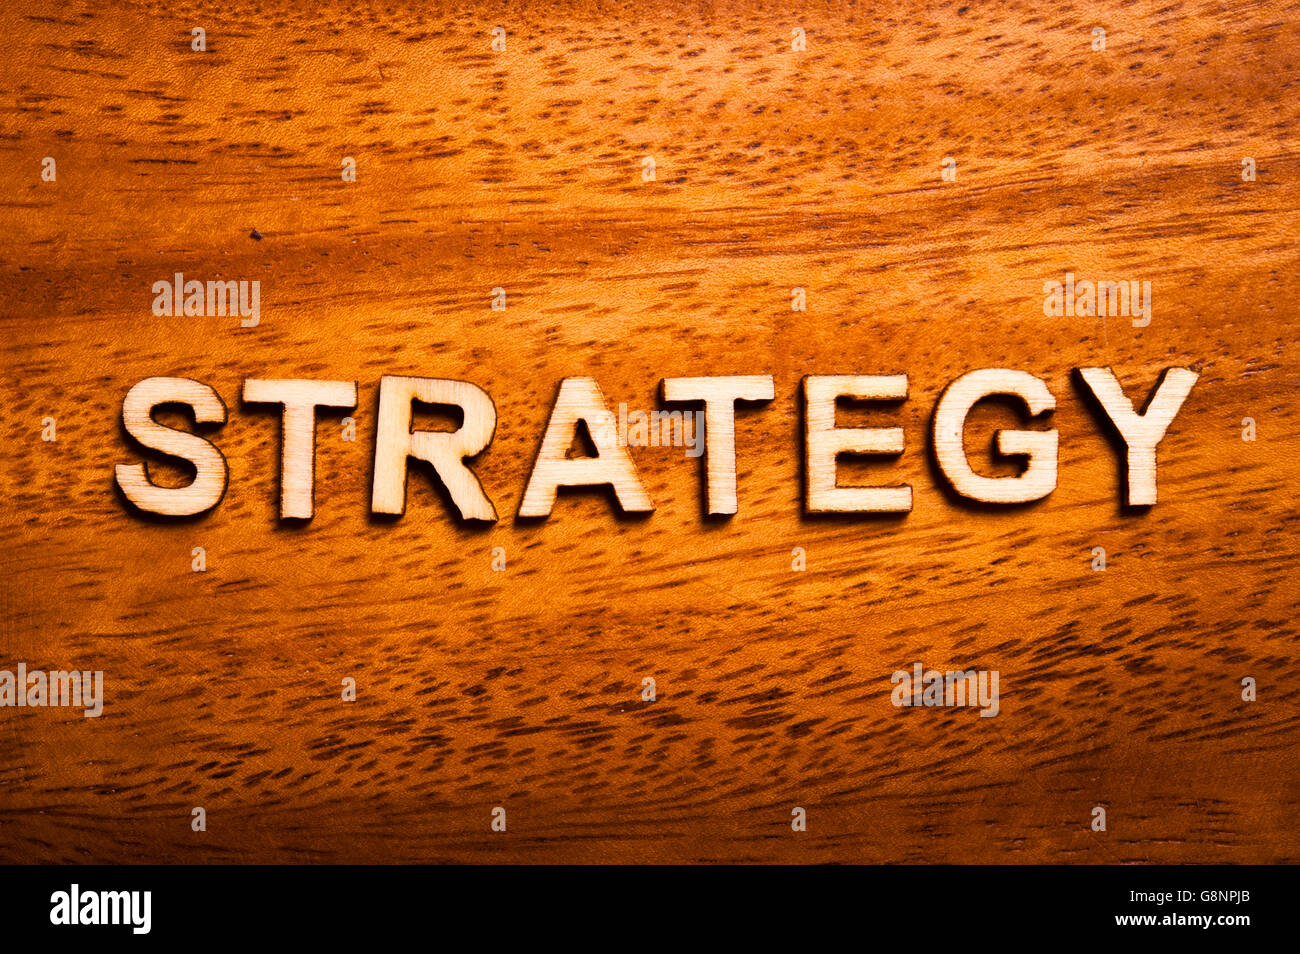 strategy concept - Stock Image